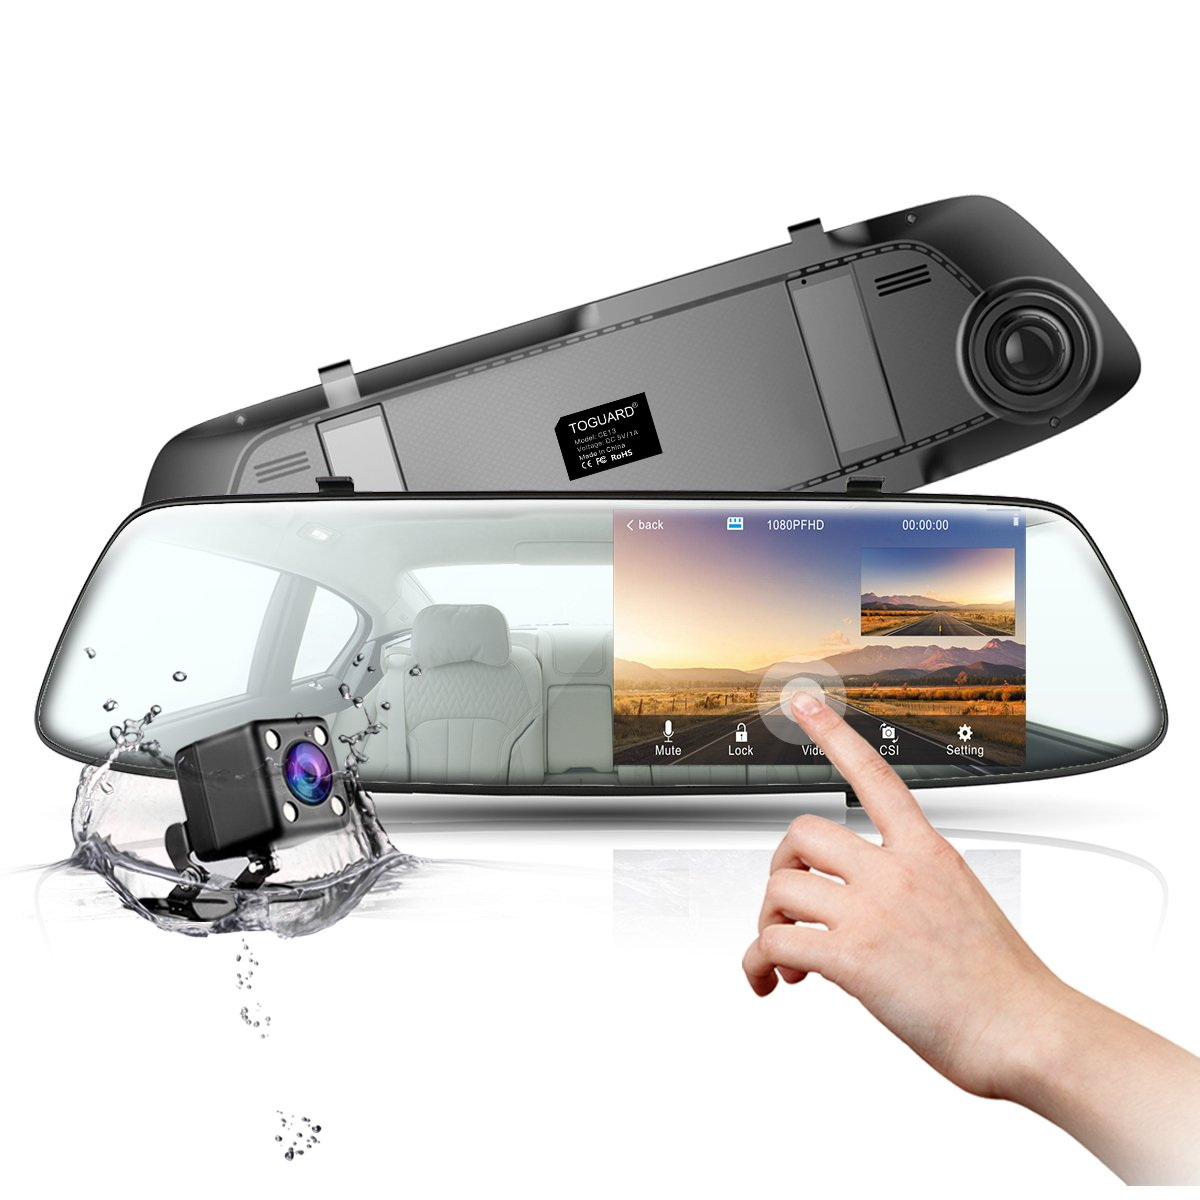 Backup Camera Dash Cam TOGUARD Rear View Mirror Dual Dash Cams 4.3 inch Touch Screen 1080P Front Car Camera Video Recorder Parking Monitor G-Sensor Loop Recording